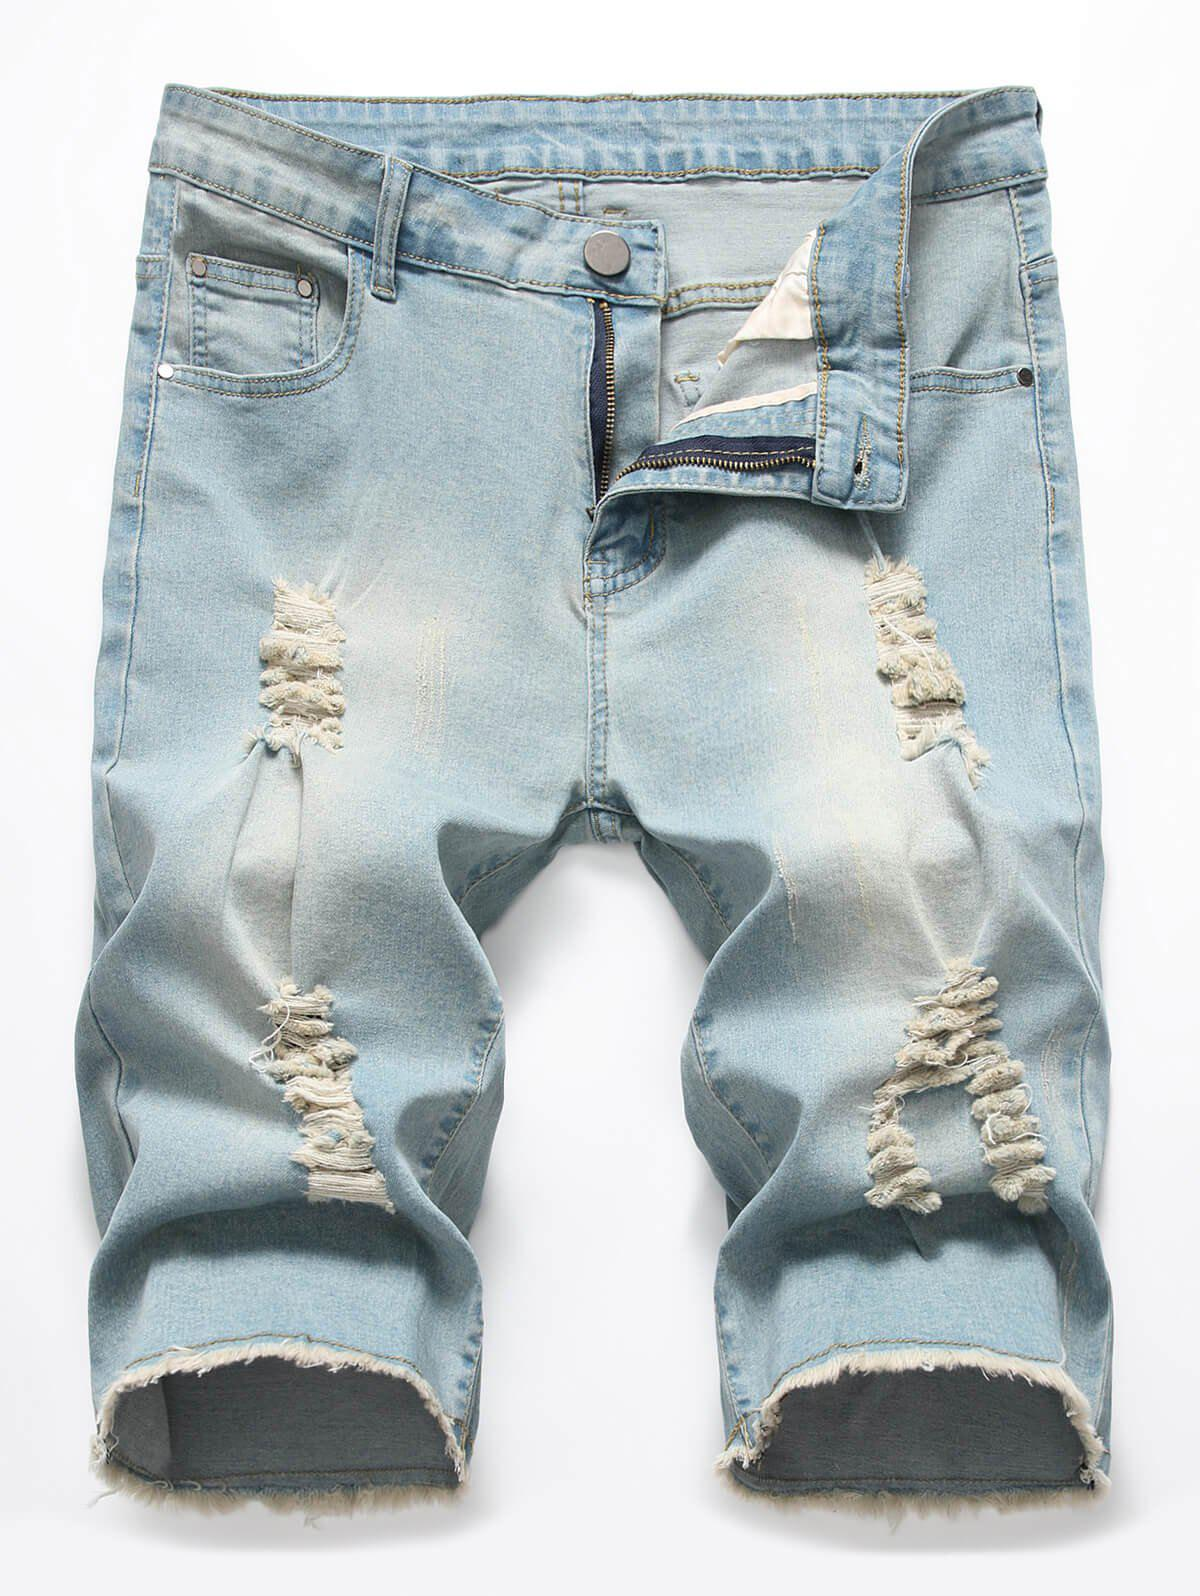 Sale Zipper Fly Casual Ripped Jeans Shorts